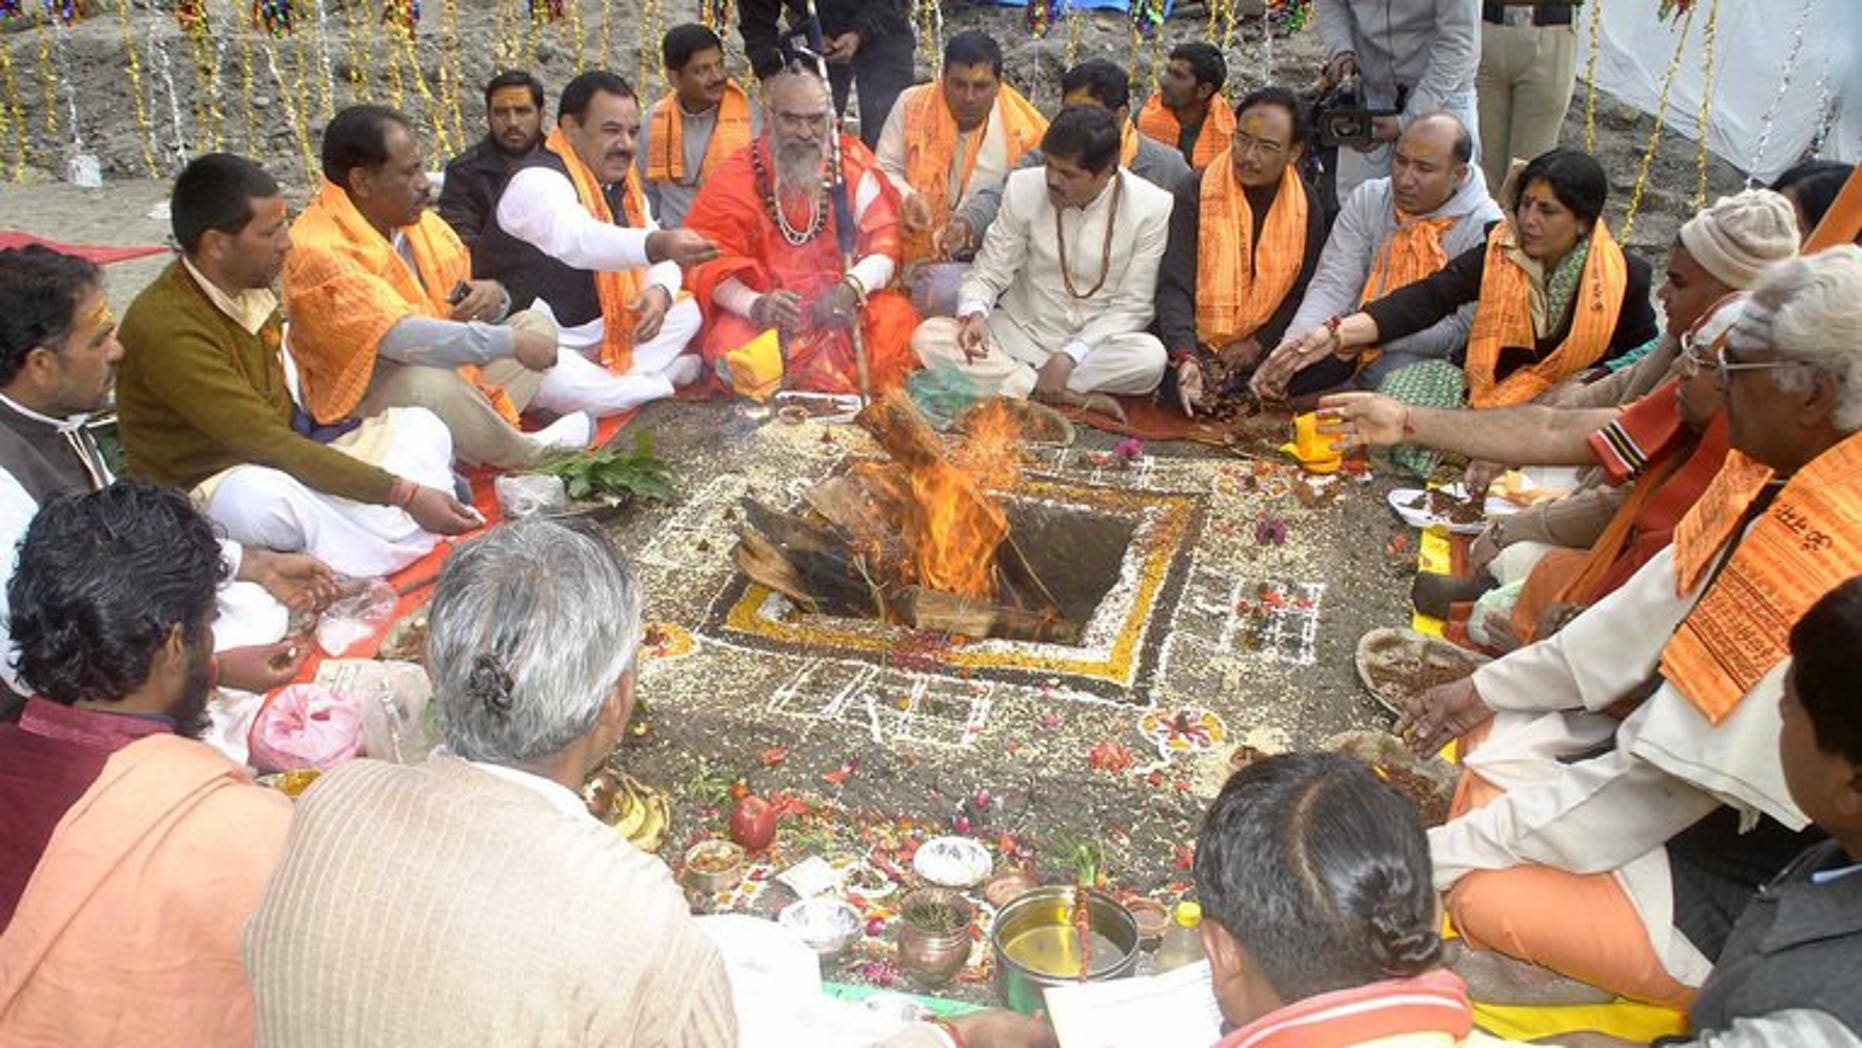 Indian Hindu devotees sit around a fire as they give offerings during prayers at Kedarnath temple in Uttarakhand state, on September 11, 2013. A Hindu temple at the centre of a devastated area of the Indian Himalayas hit by floods in June, has reopened for prayers as reconstruction efforts continued across the region.